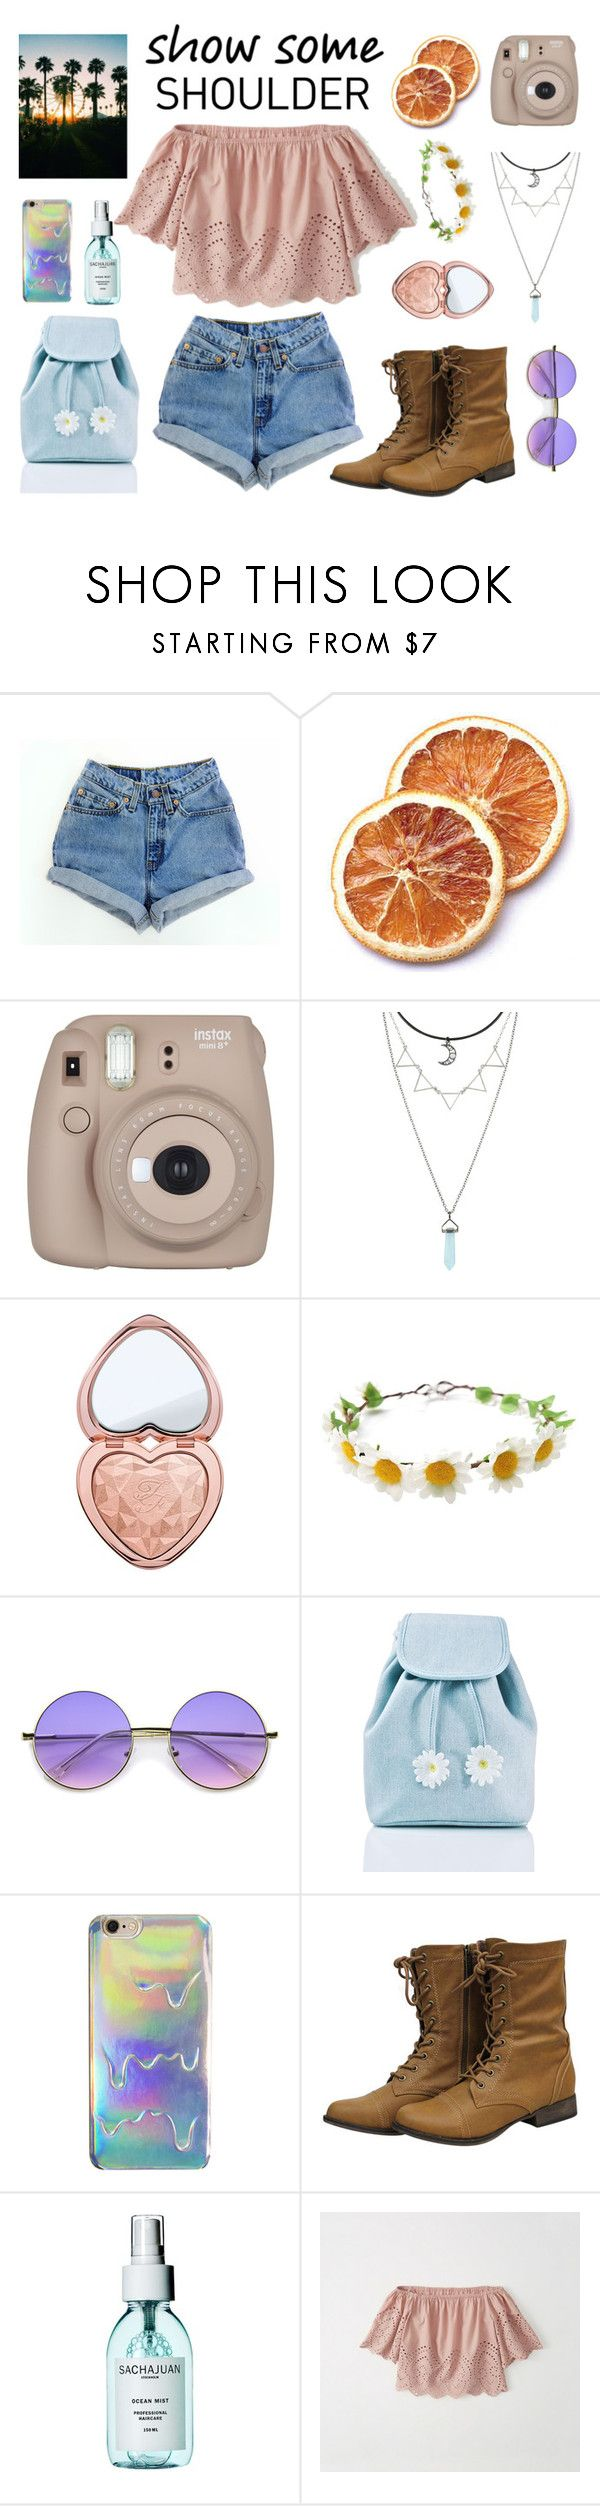 """""""Chella vibe"""" by lanagur on Polyvore featuring мода, Levi's, Fujifilm, Too Faced Cosmetics, ZeroUV, Sugarbaby, Sachajuan и Abercrombie & Fitch"""